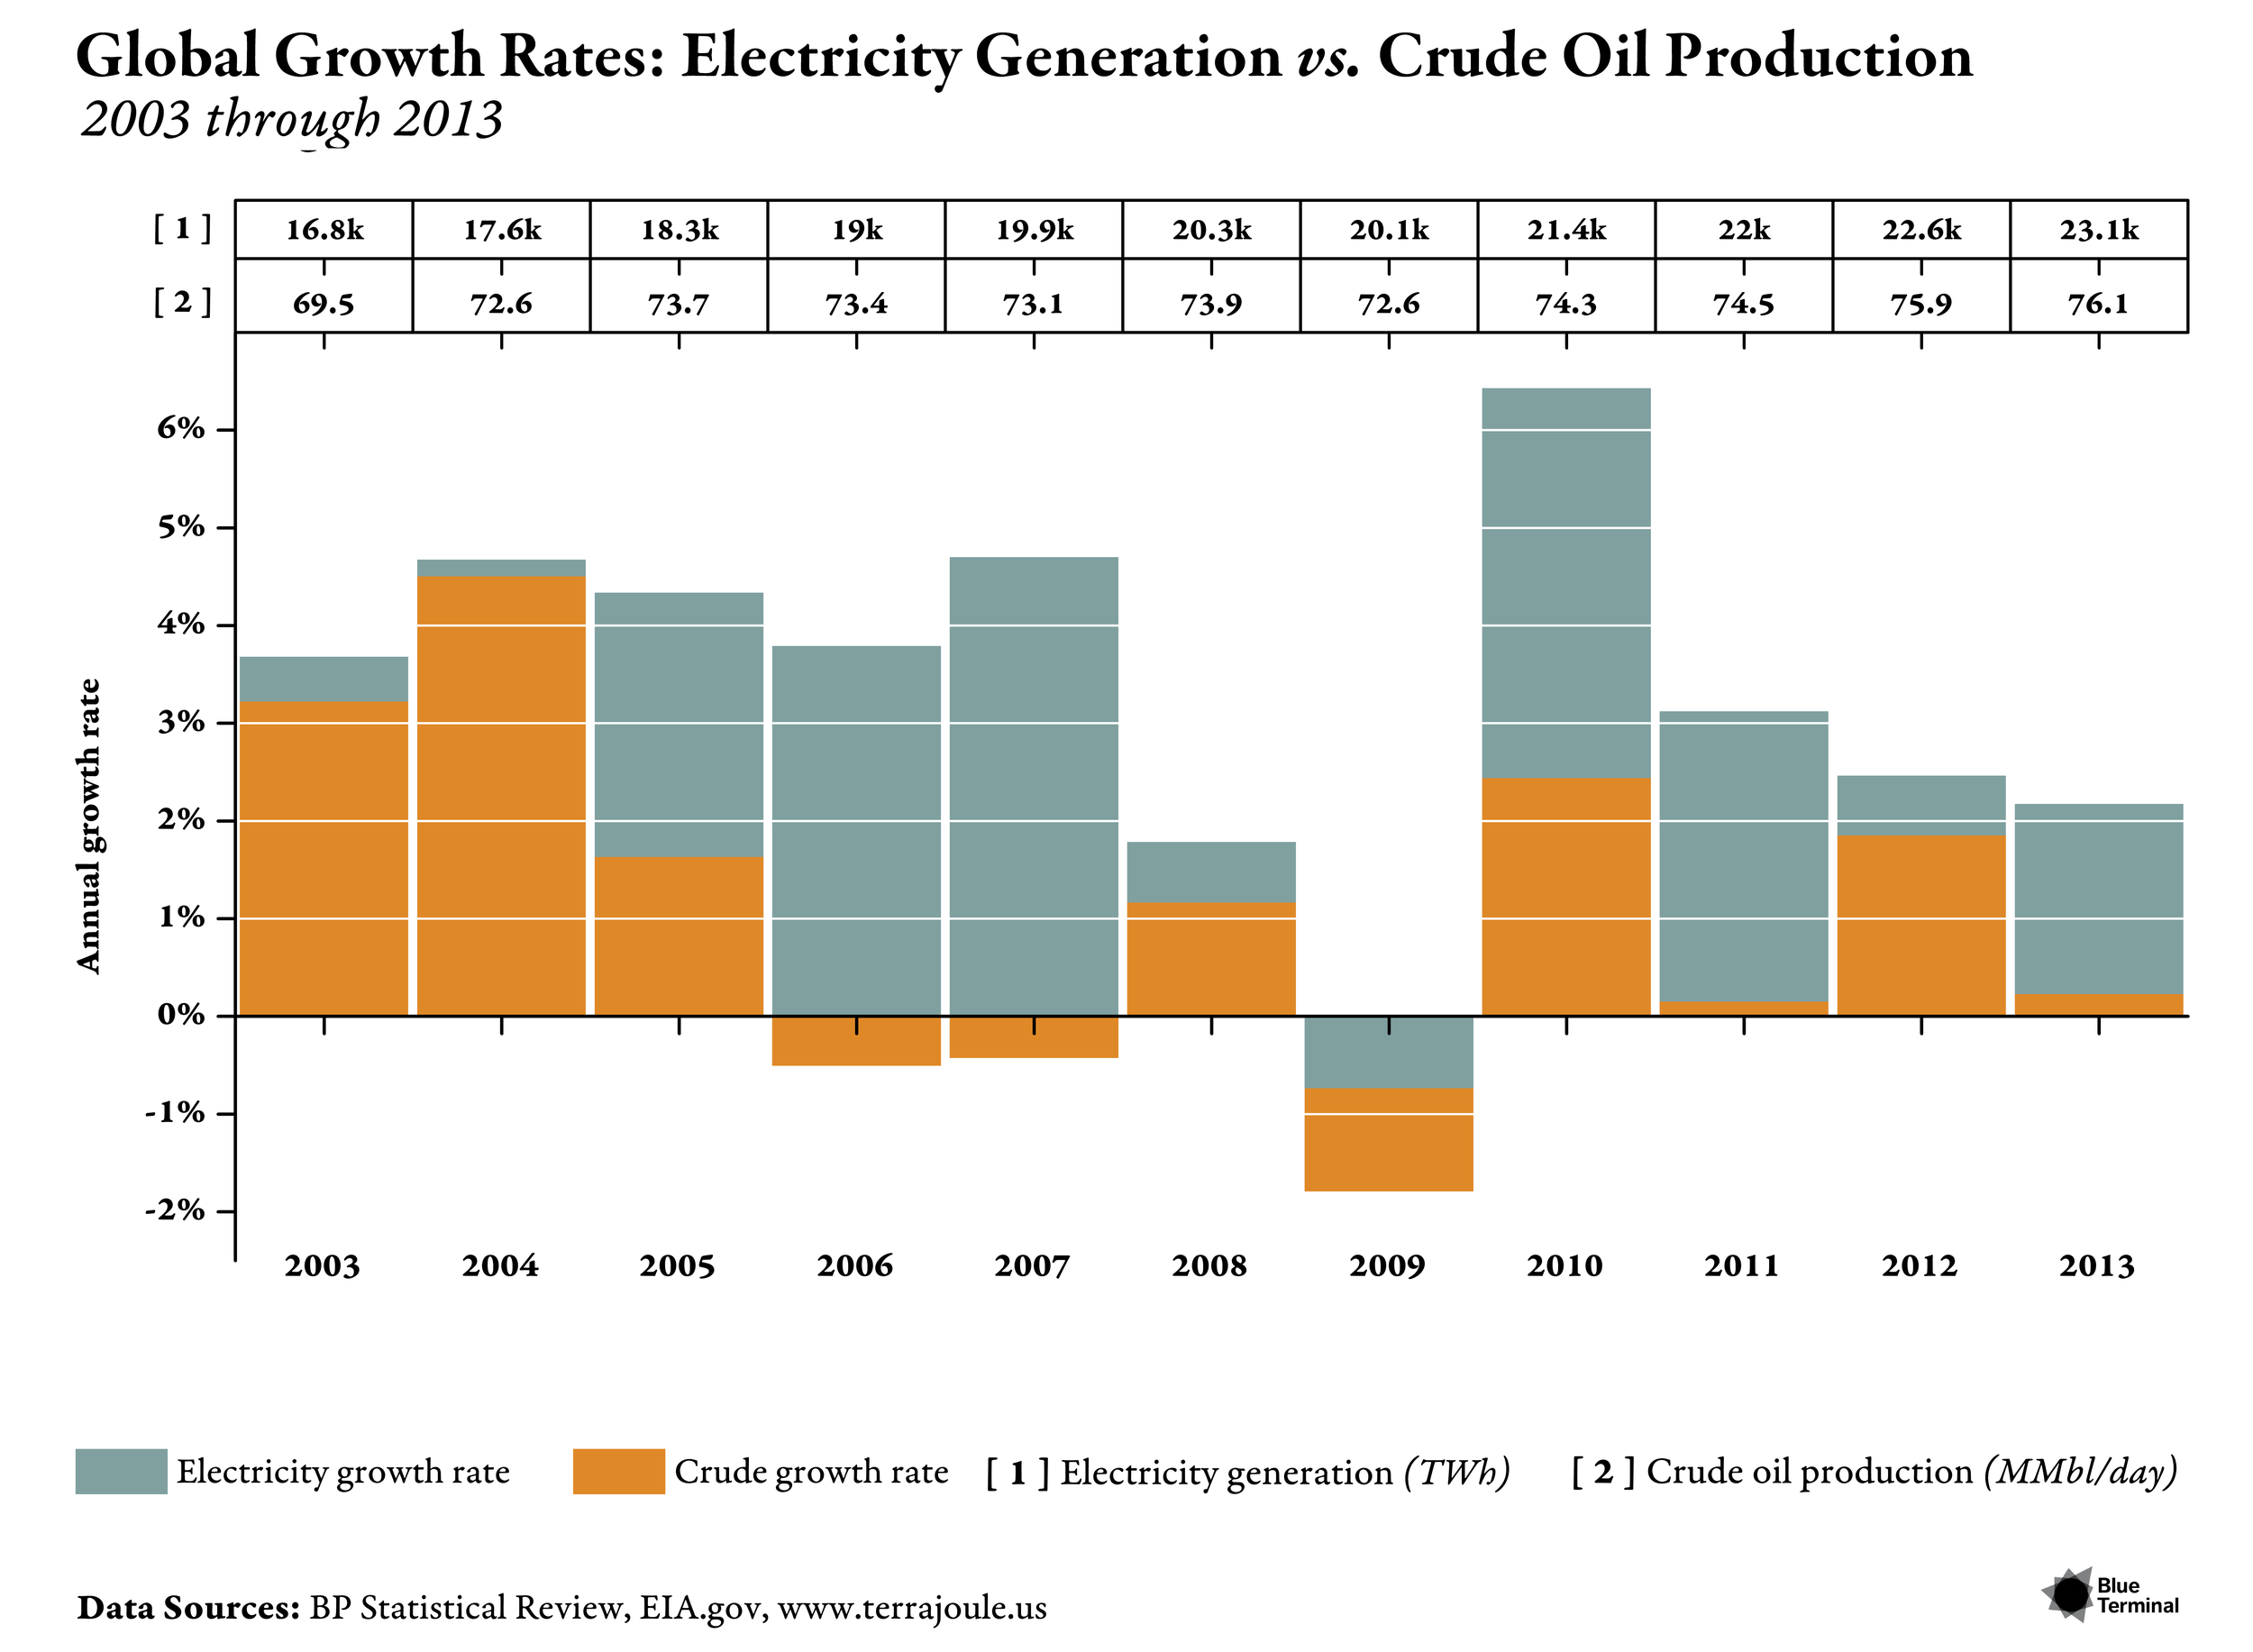 GLOBAL GROWTH RATES: ELECTRICITY GENERATION VS. CRUDE OIL PRODUCTION Release Date : June 2014  Client : June 2014 Issue of Terrajoule.us  With this bar chart, we are overlaying two data series from the 2014 BP Statistical Review ongrowth rates in electricity production vs. global crude oil production growth.  Several features highlight our design choices: (1) by overlaying the plot's grid on top of thebars for each year's data, these columns appear that these are blocks laid on top of each other(rather than displaying the grid underneath the bars as in many conventional plots) (2) a tables present at the top of the chart to show the values for each year (3) rather than showing columns in parallel to each other, we stack the columns on top of each other to highlight theyears where electricity generation growth is higher than oil production growth.